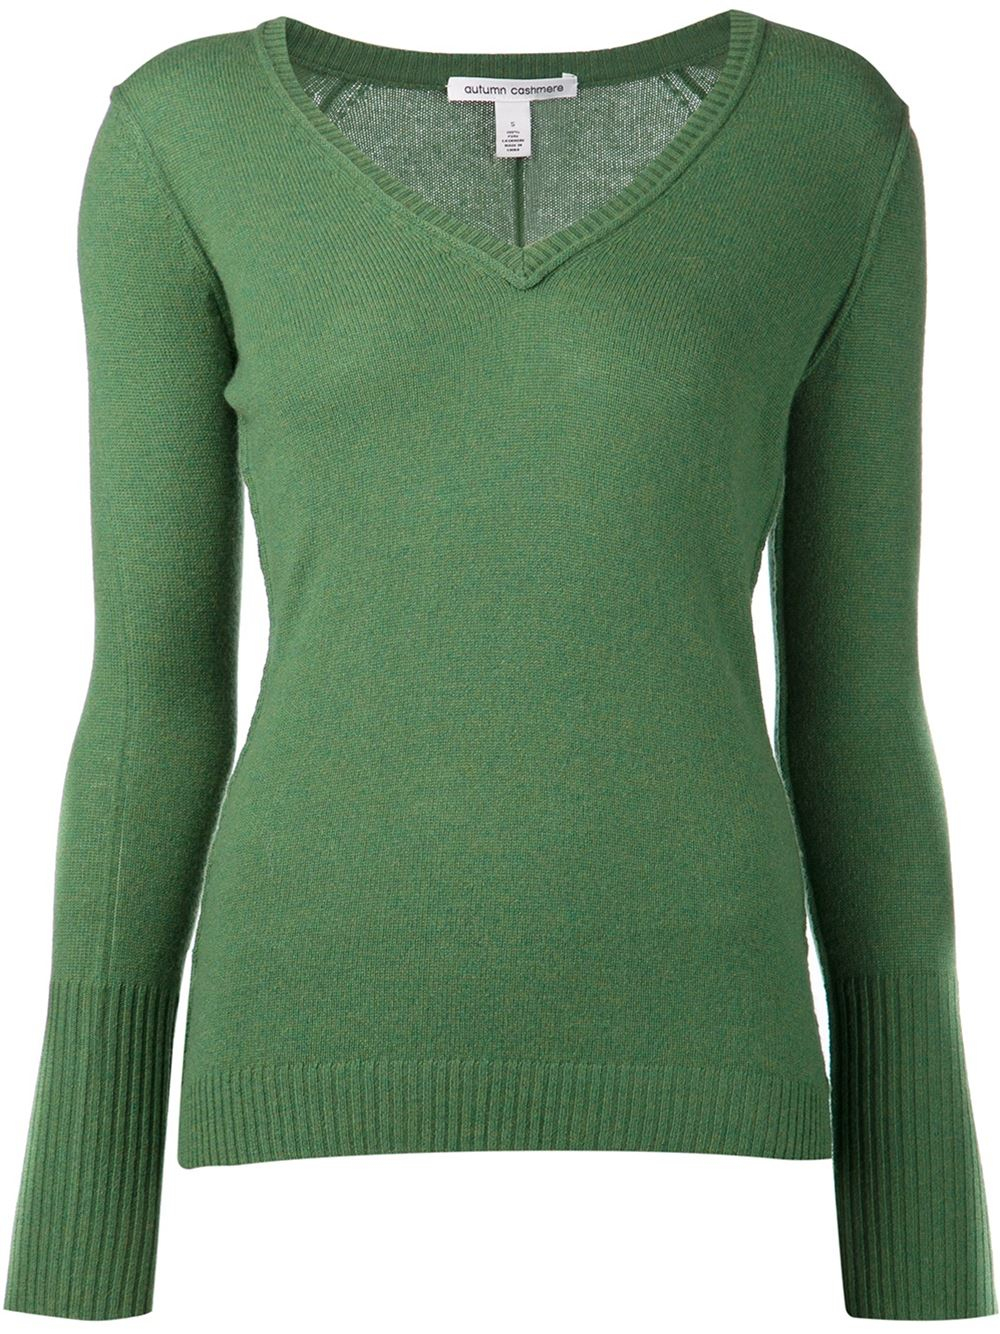 Green Cashmere Sweater